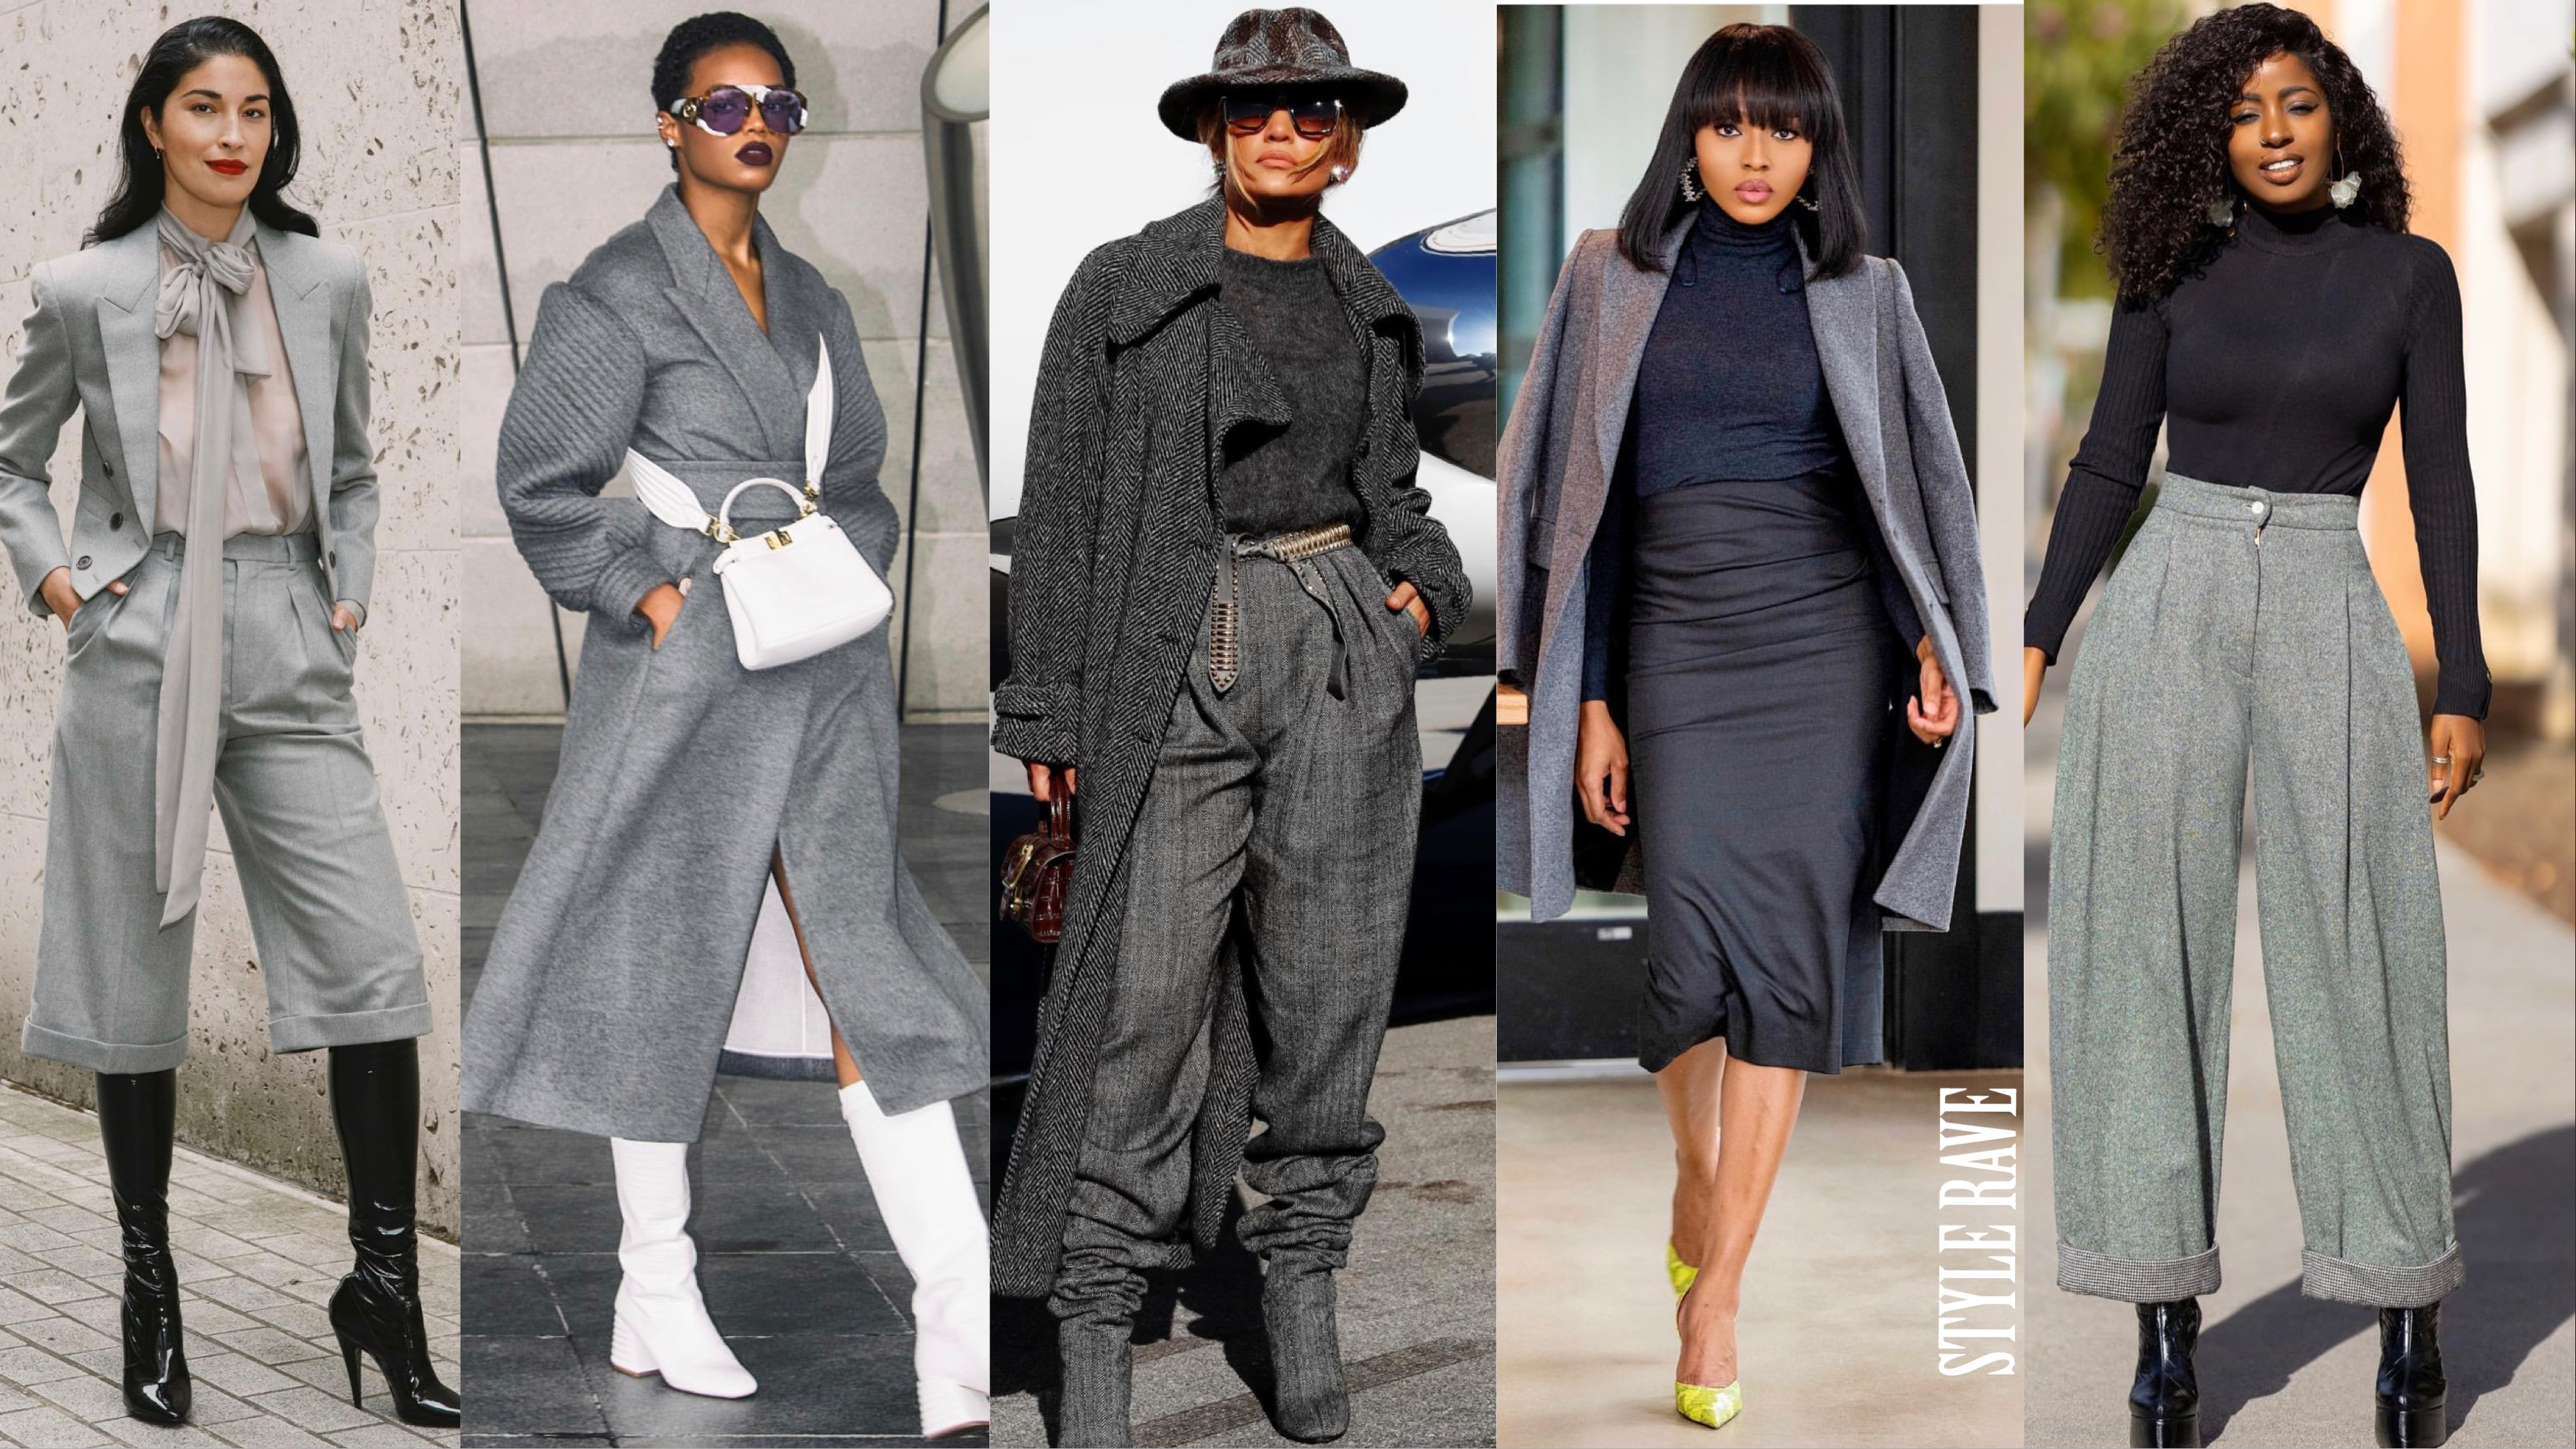 5-women-show-how-to-style-gray-outfits